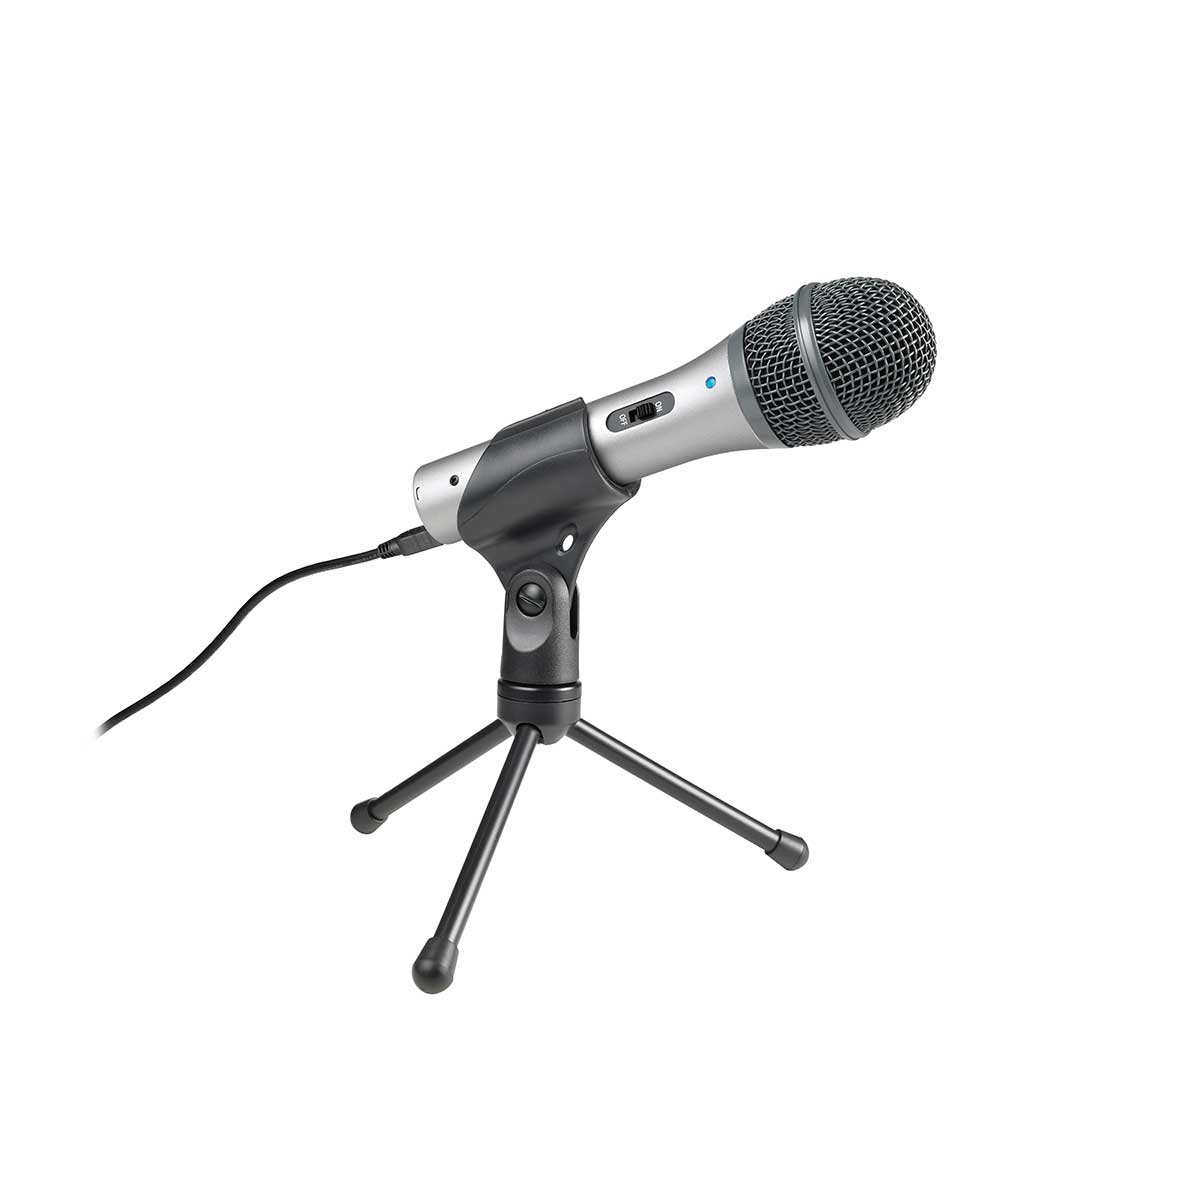 Audio-Technica ATR2100-USB Cardioid Dynamic USB/XLR Microphone